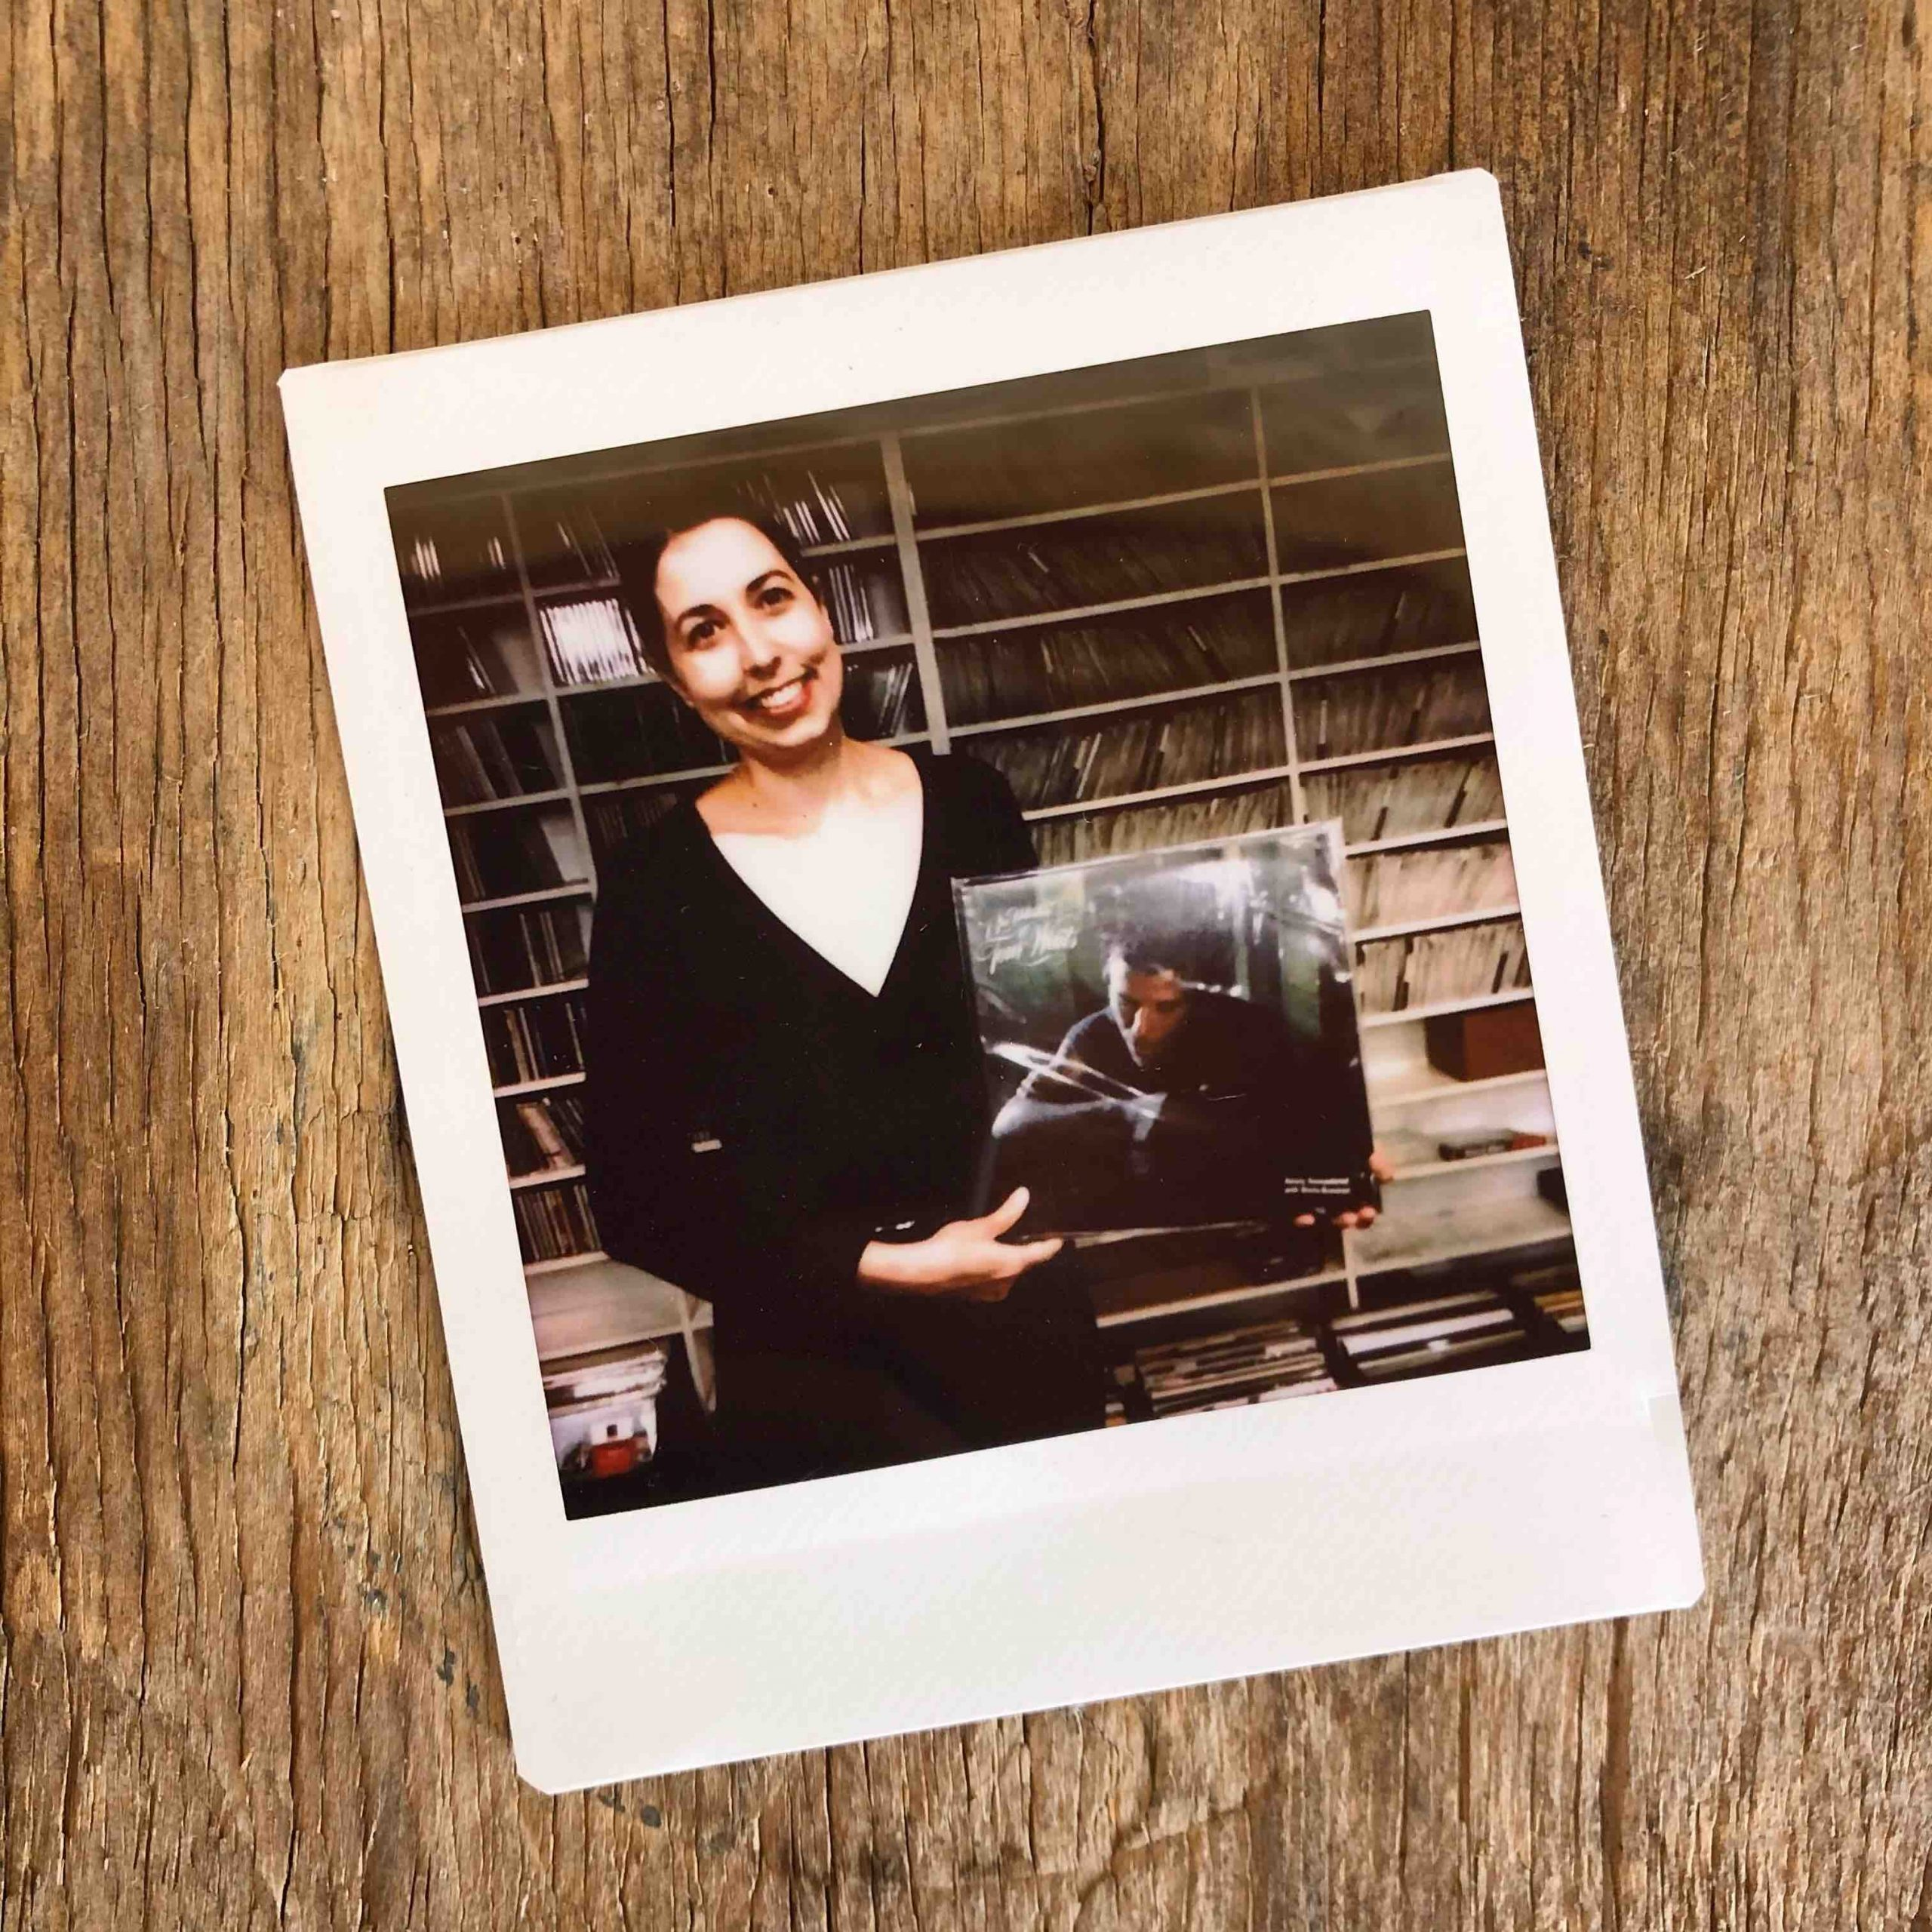 Polaroid of girl holding a Tom Waits record